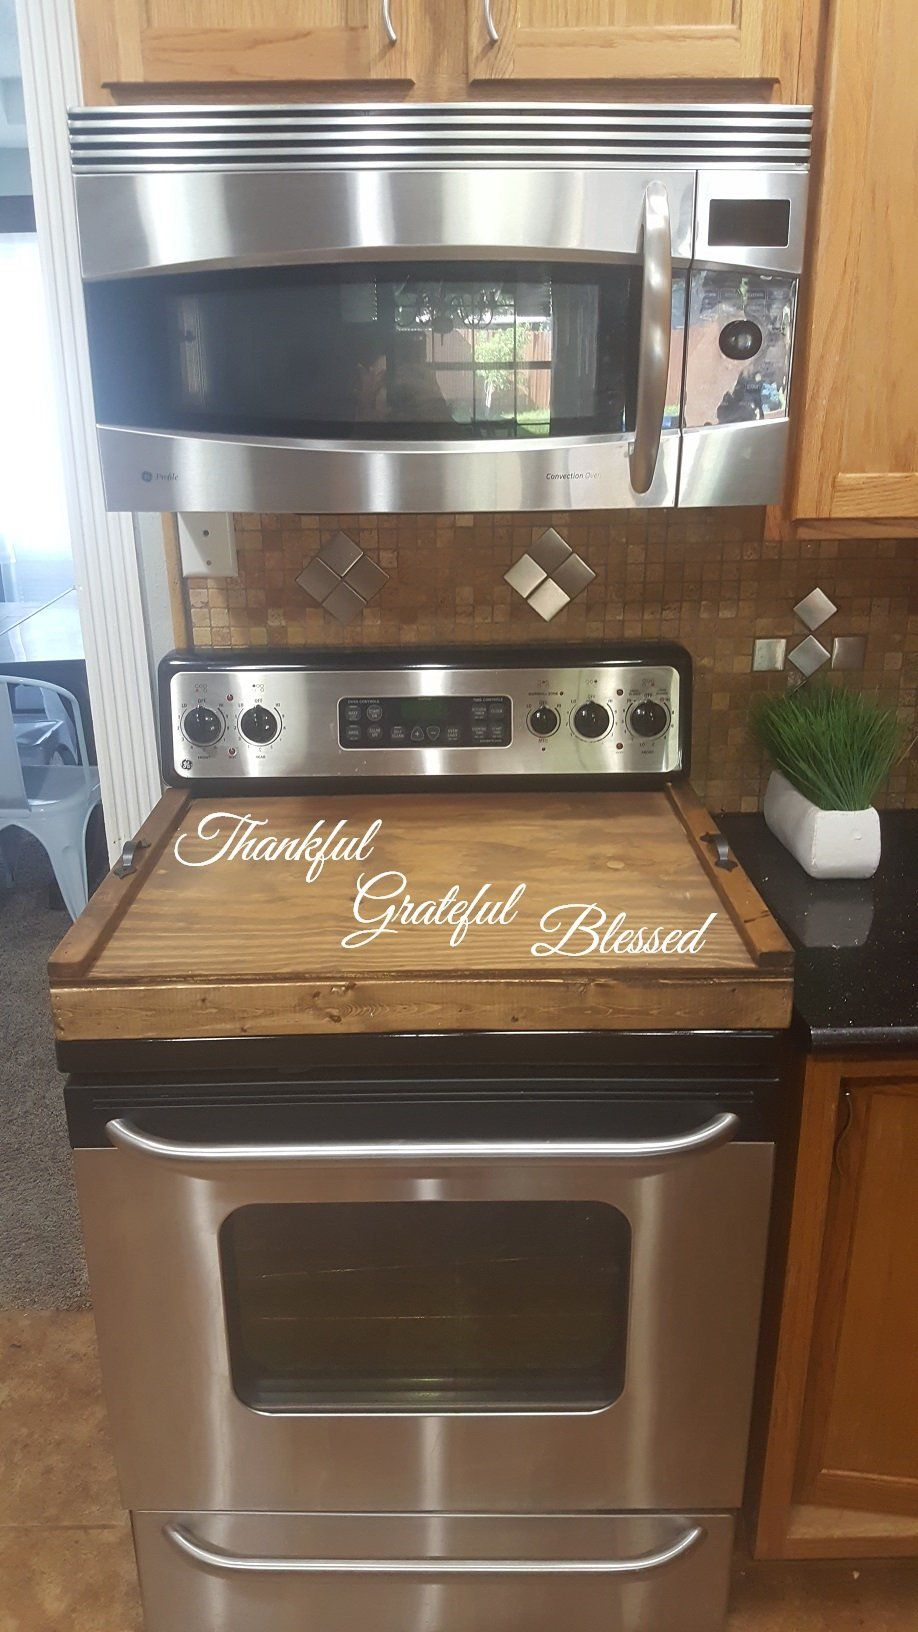 How To Stove Top Cover For Added Buffet Space I Would Like This Custom Made To Match Counter Top Surface Stove Top Cover Home Diy Home